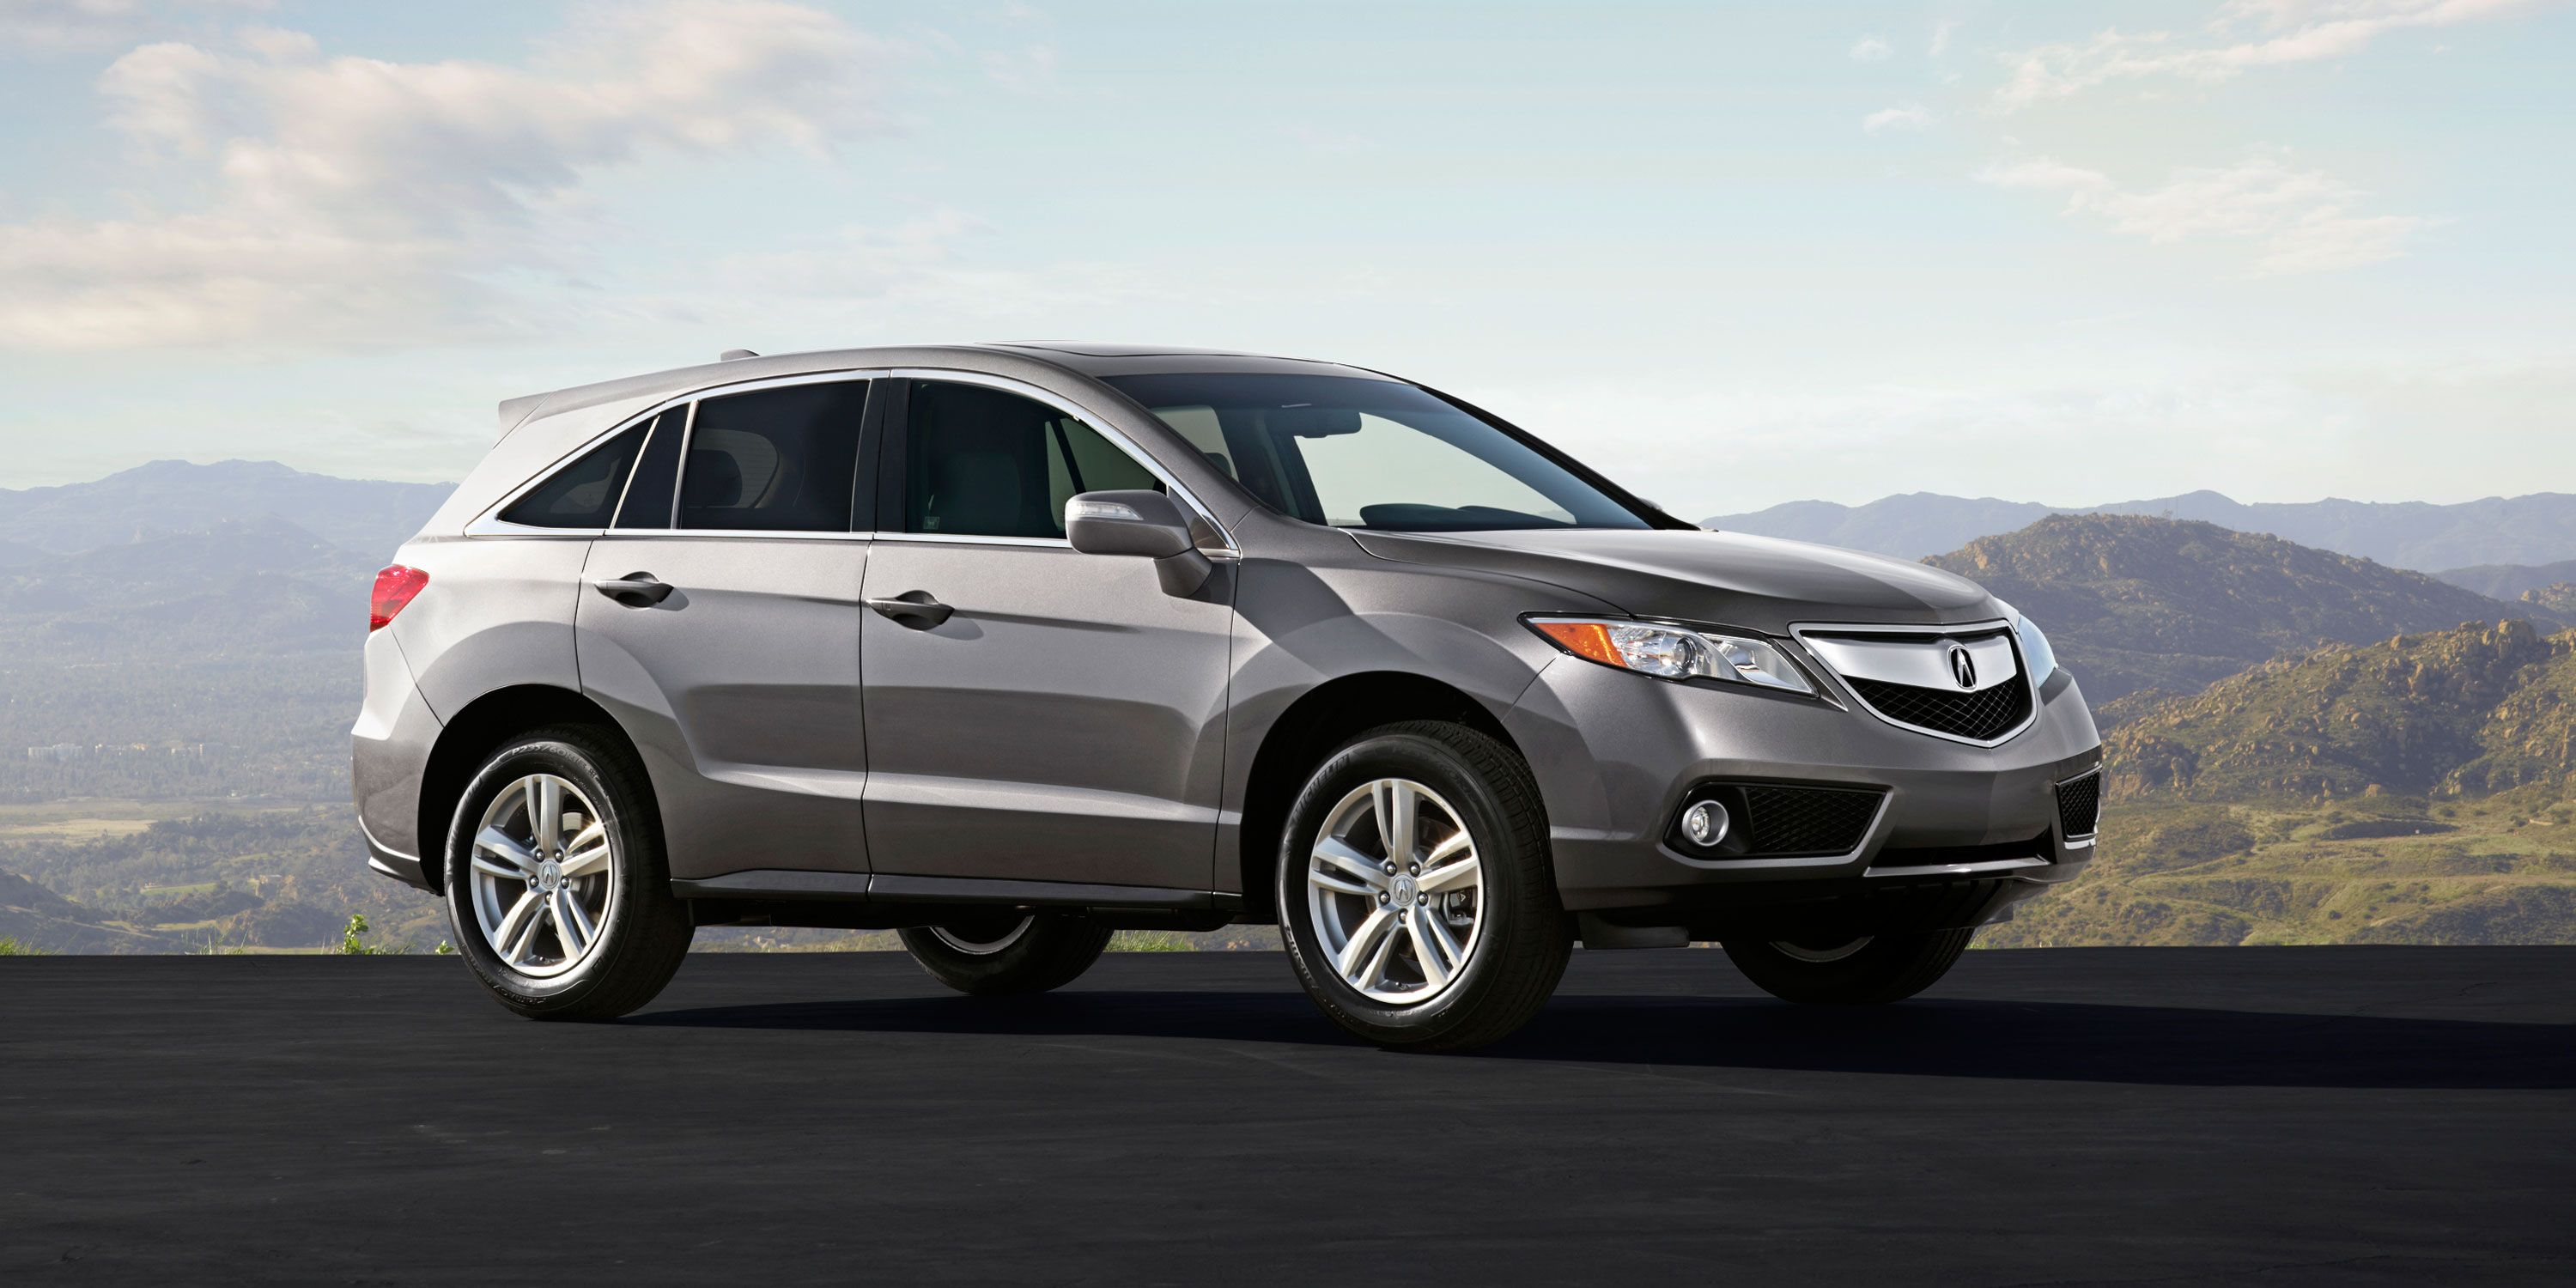 hill radio acura suv img for sale motorcars listings at mouse on models rdx